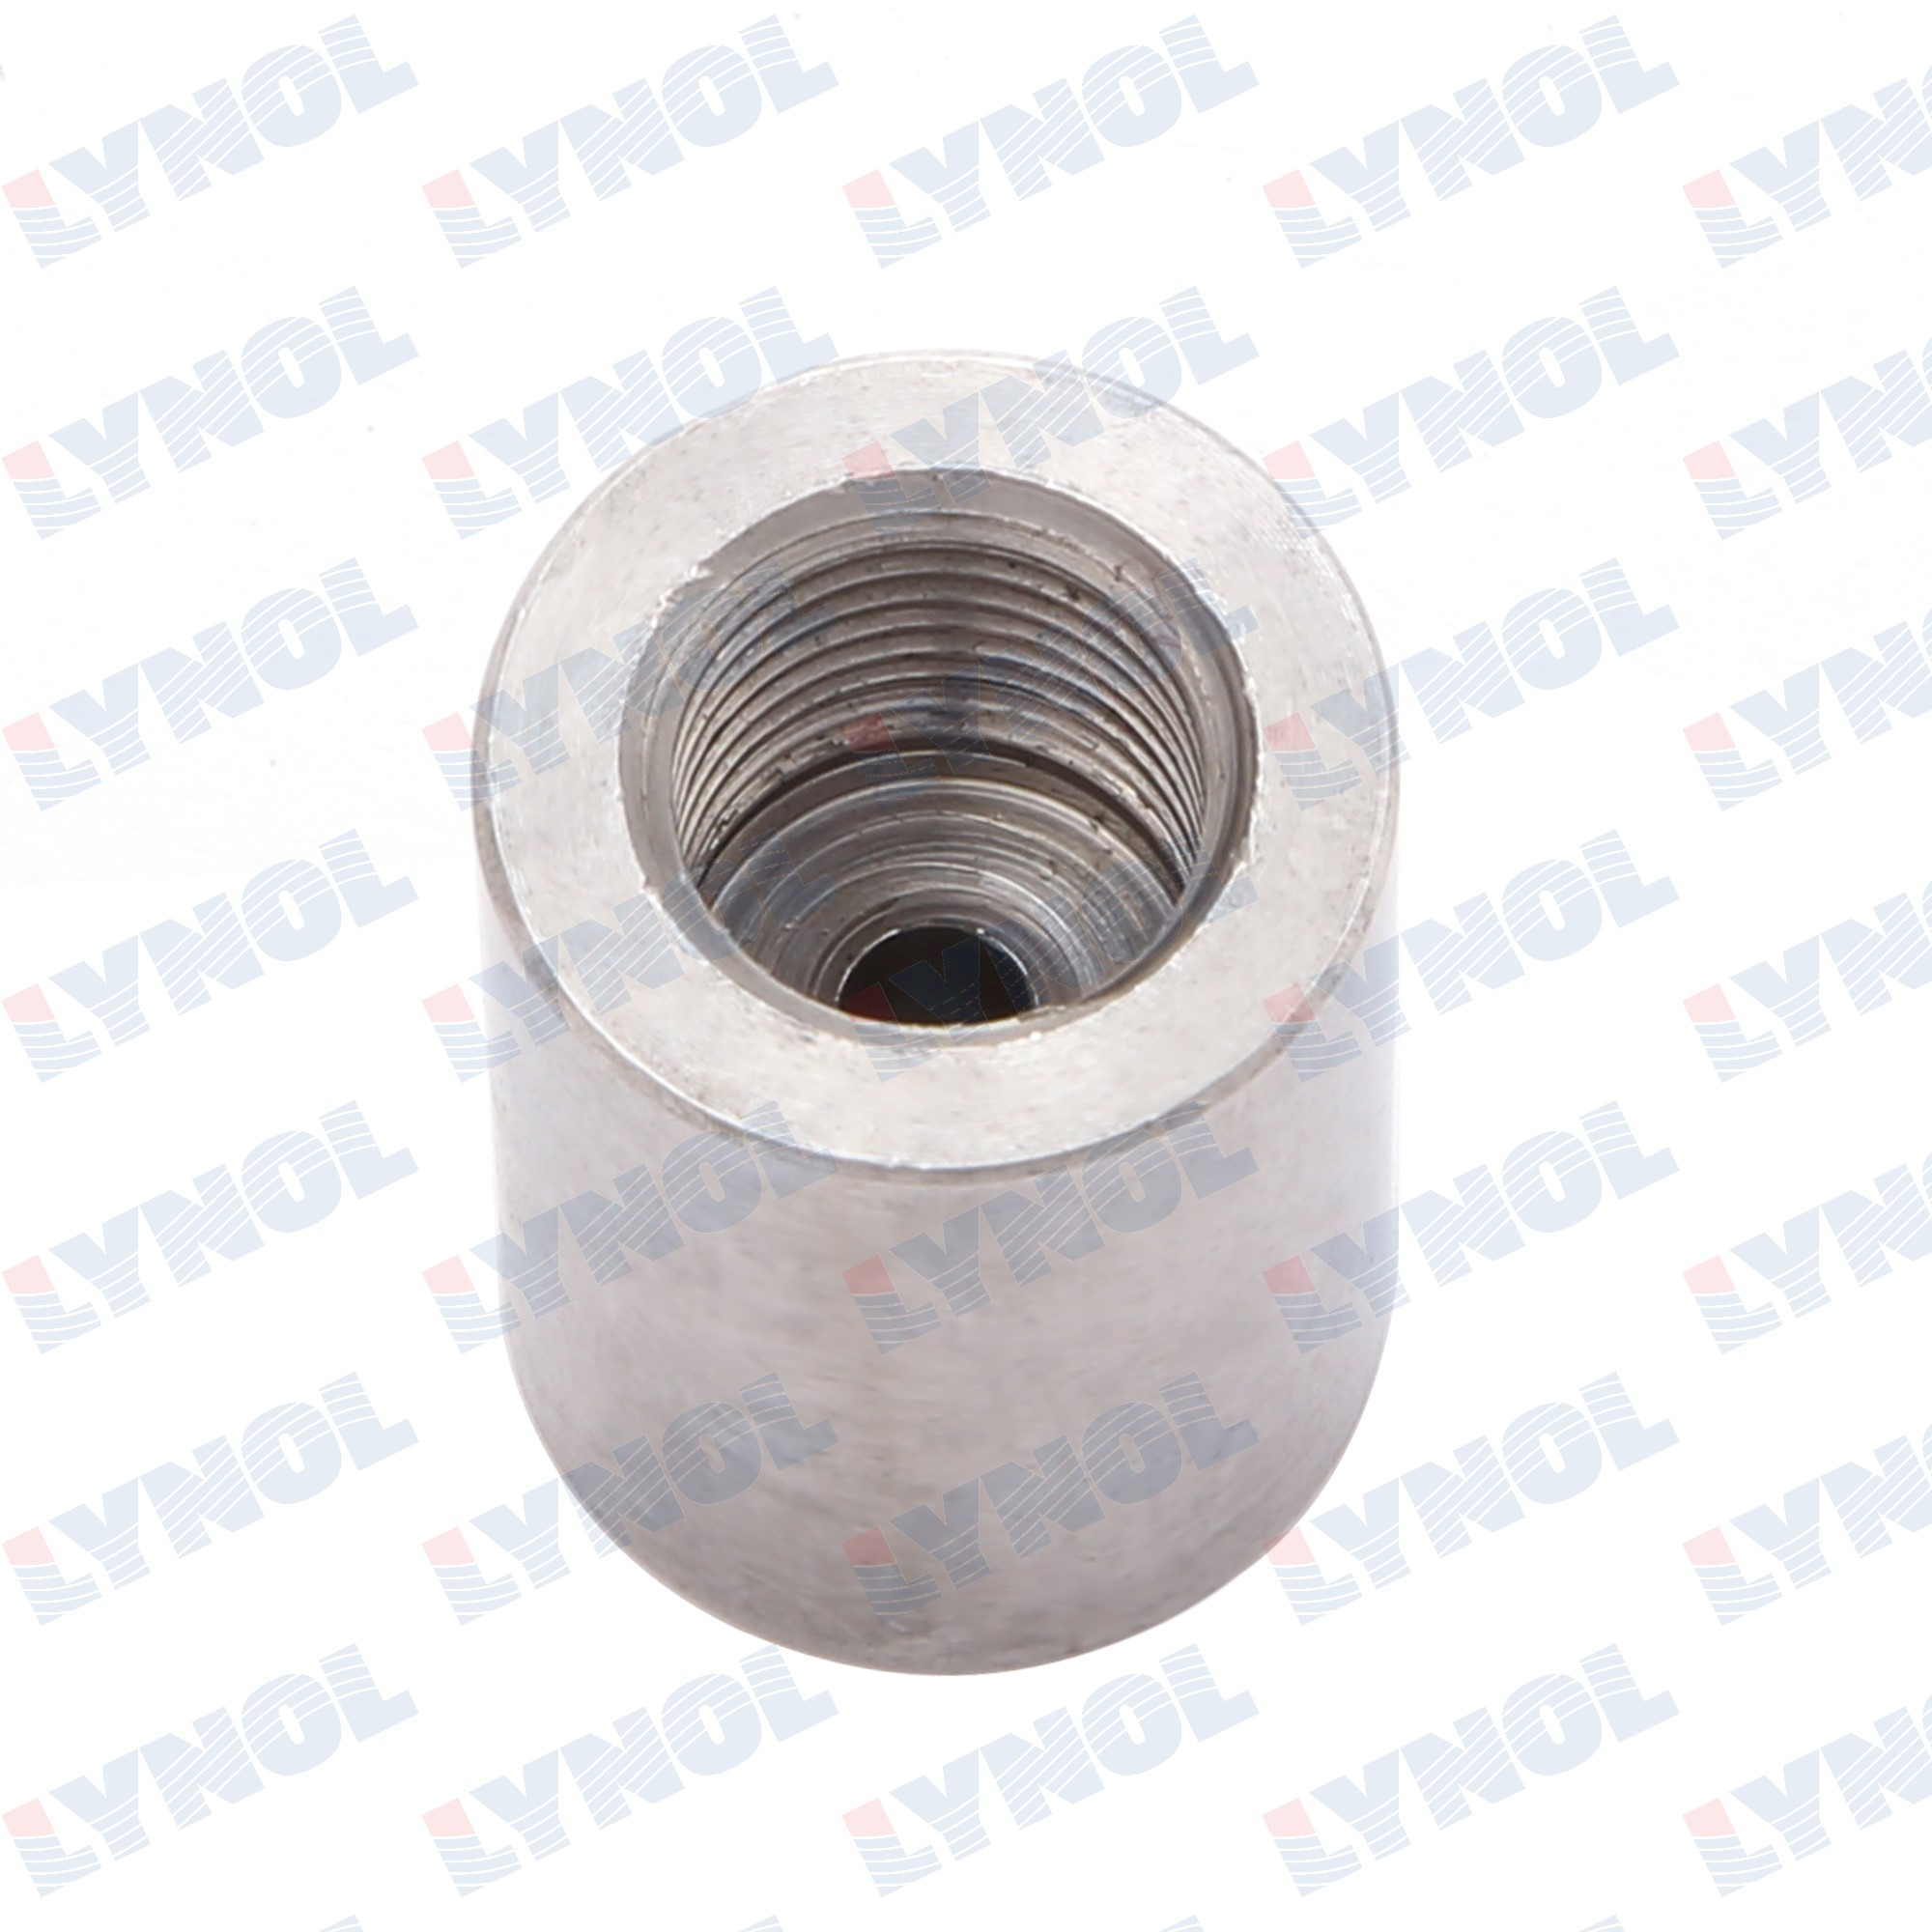 4504007 - SENSOR BUNG - M12*1.25 - Flat Flare Overall Length 1'', Outside Diameter 3/4''